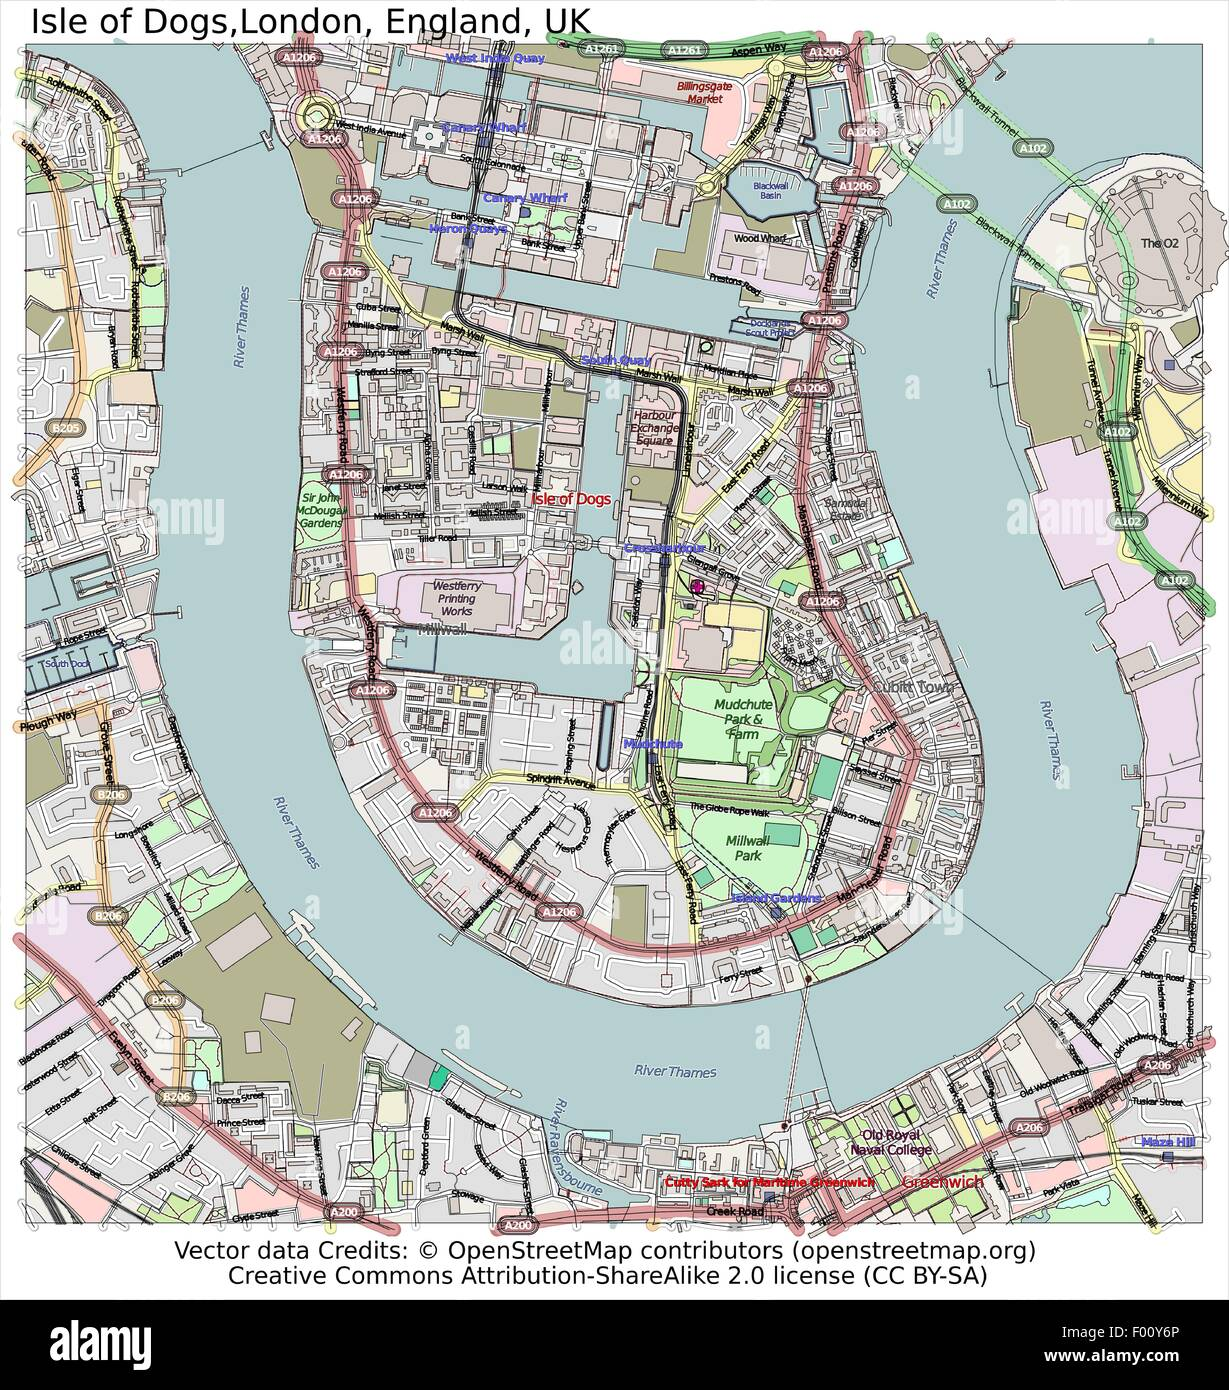 Isle Of Dogs London England Country City Island State Location Map